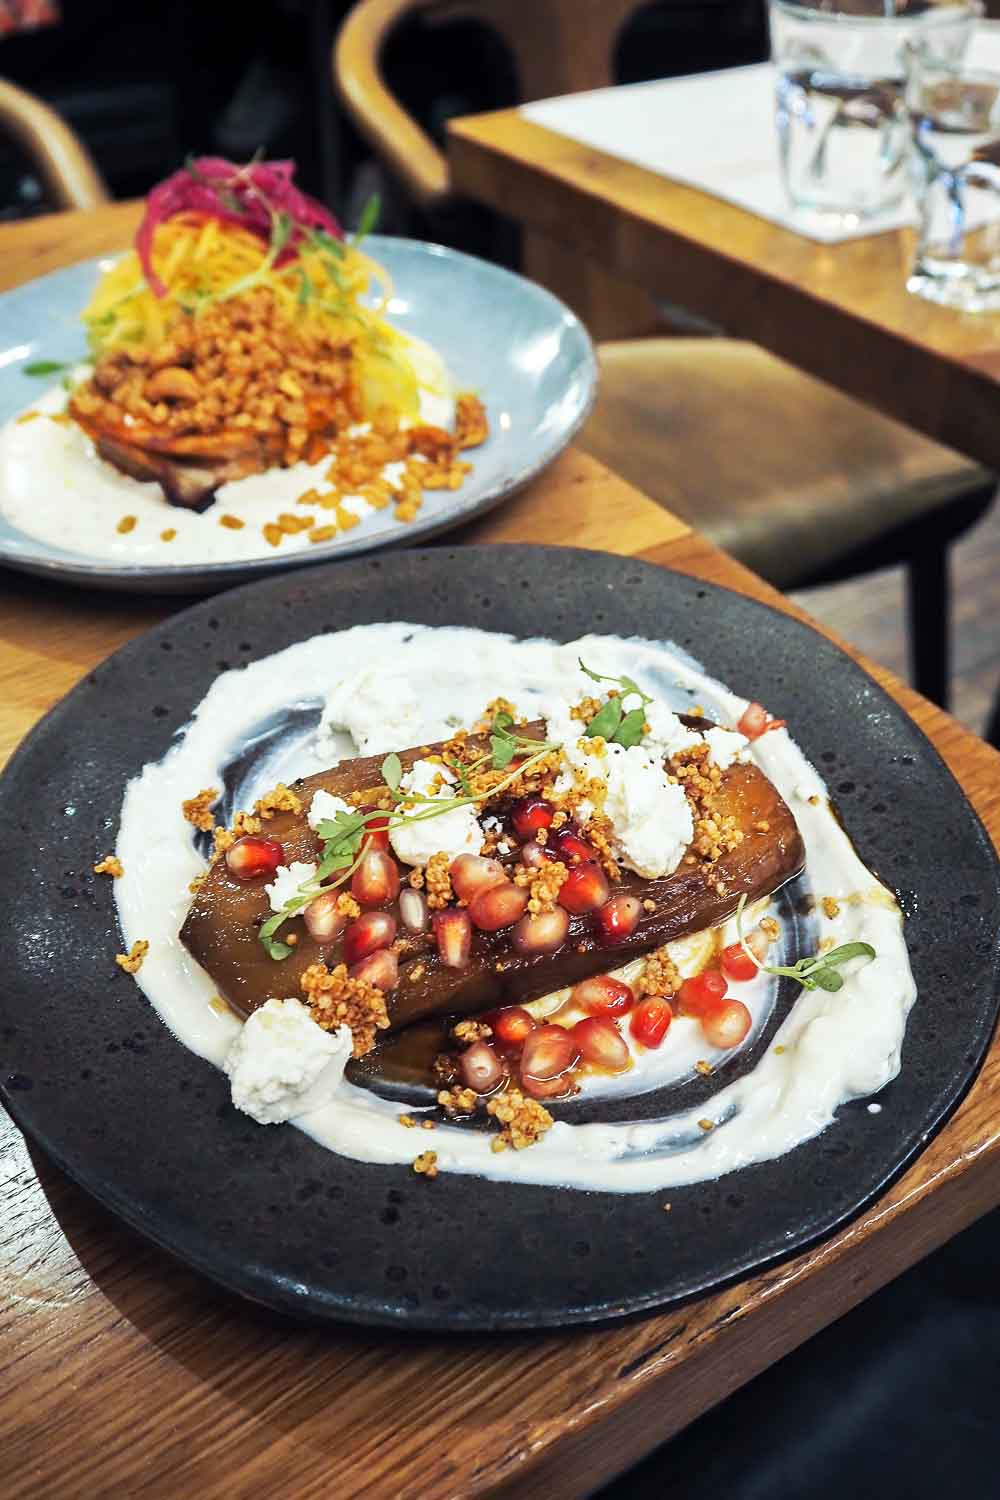 Taste the Flavours of Middle East and Asia at Foley's in Fitzrovia